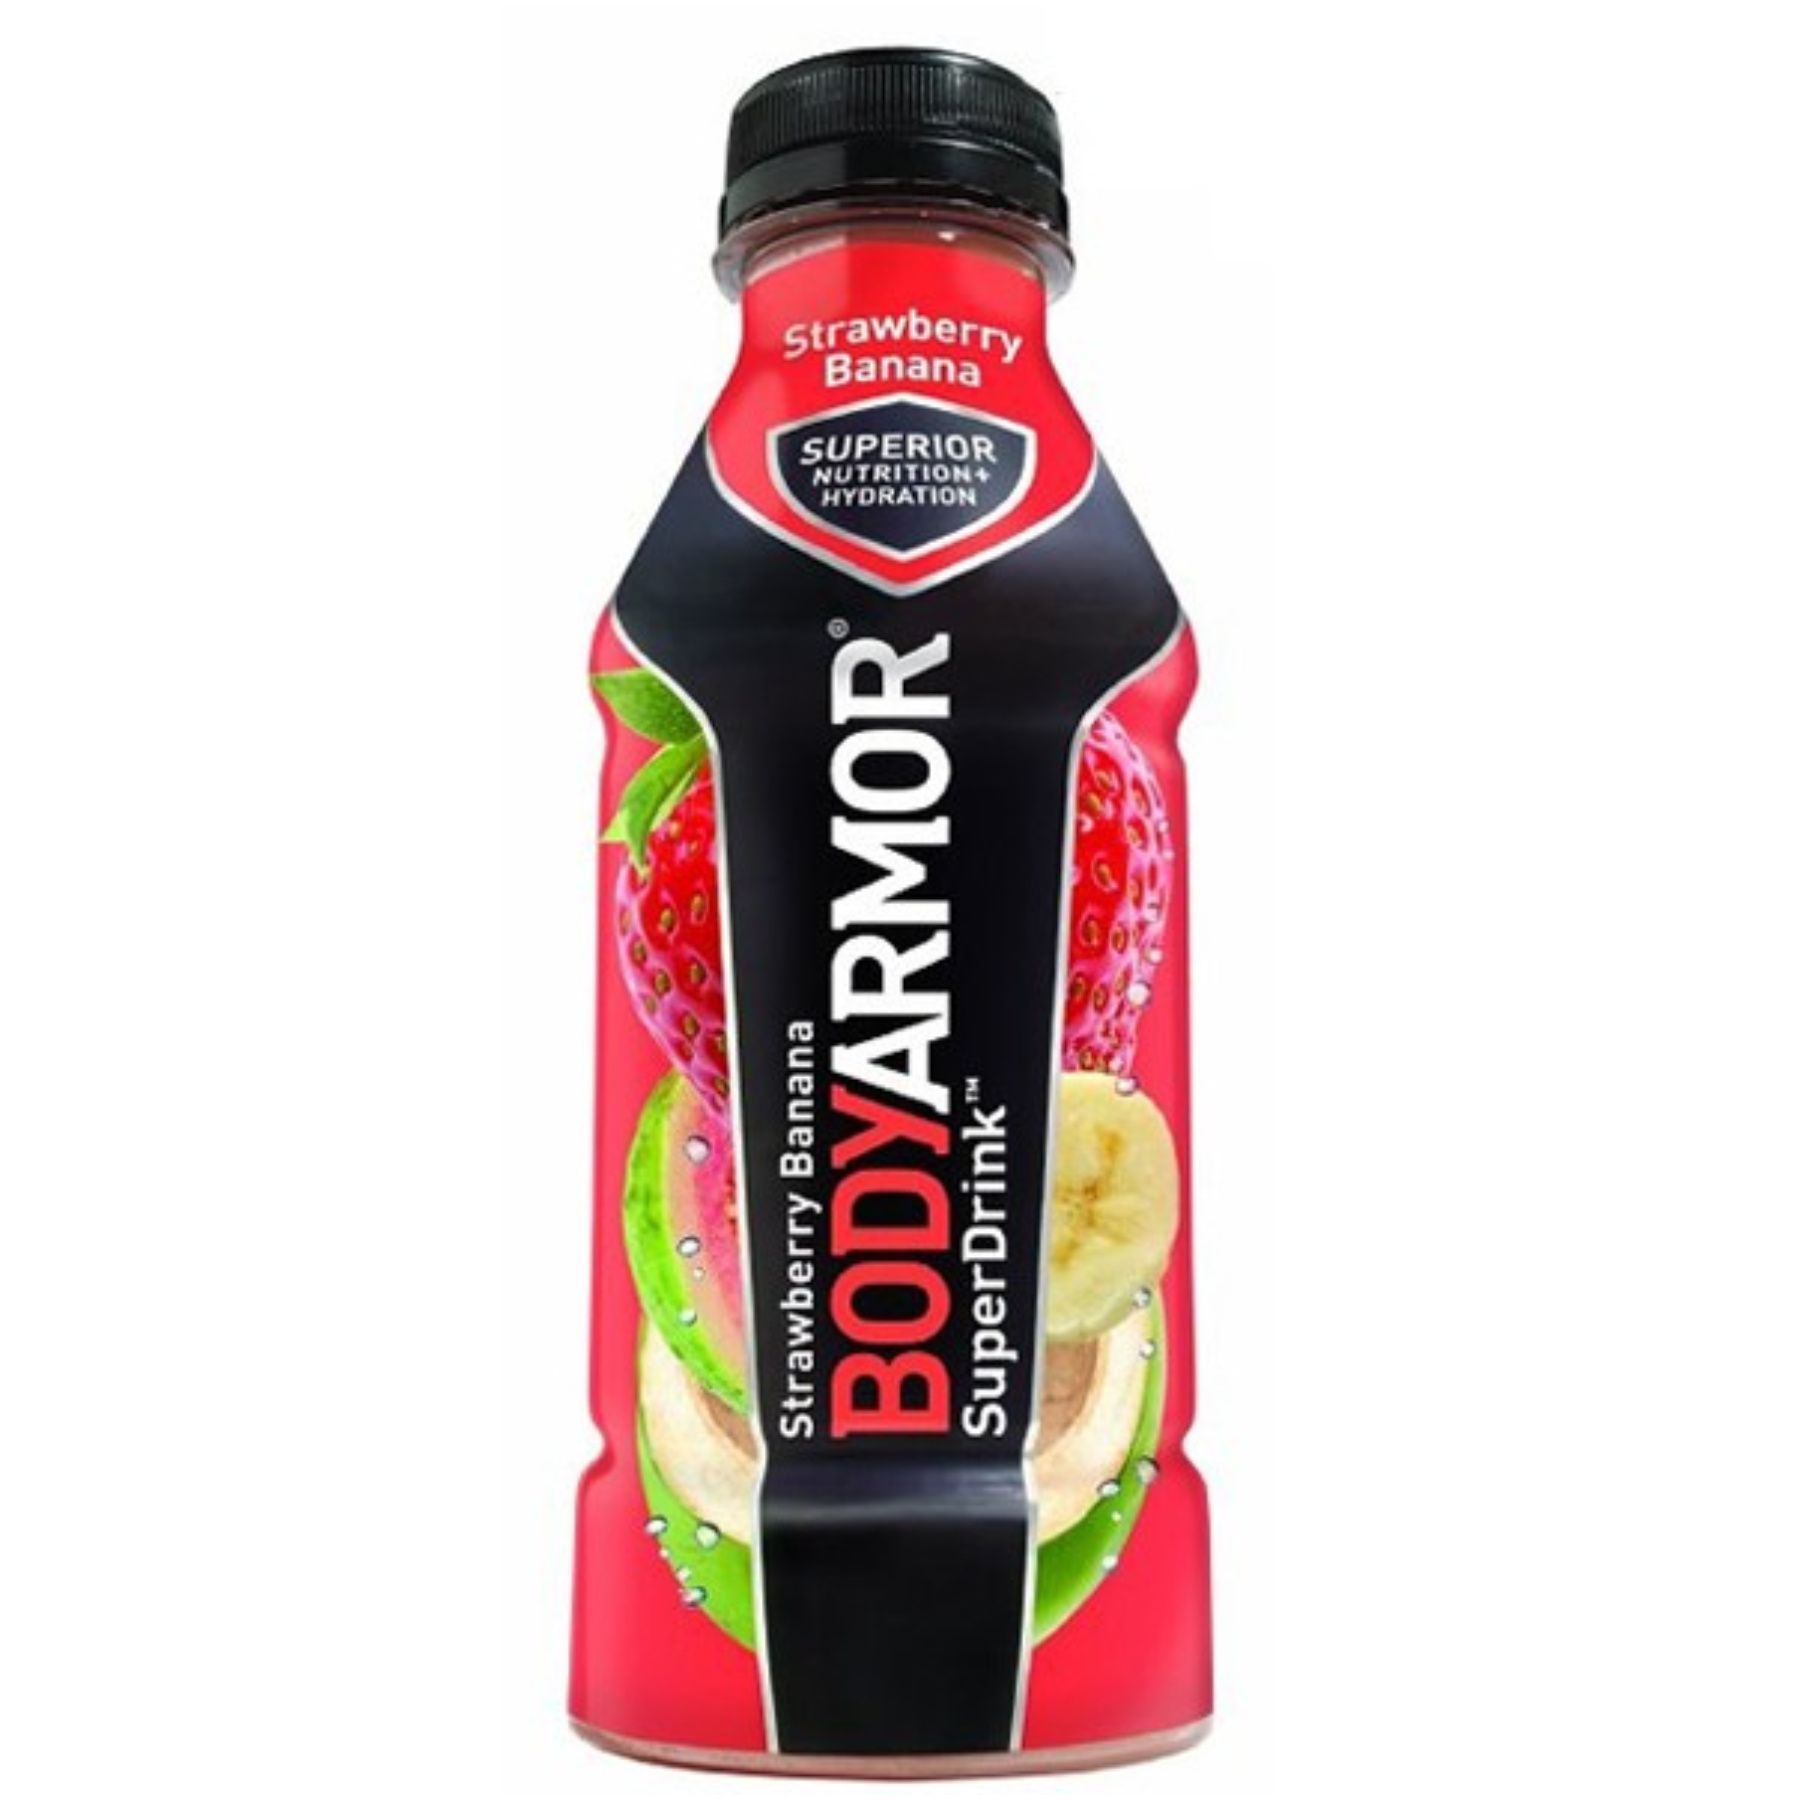 Body Armor Strawberry Banana Sports Drink blends